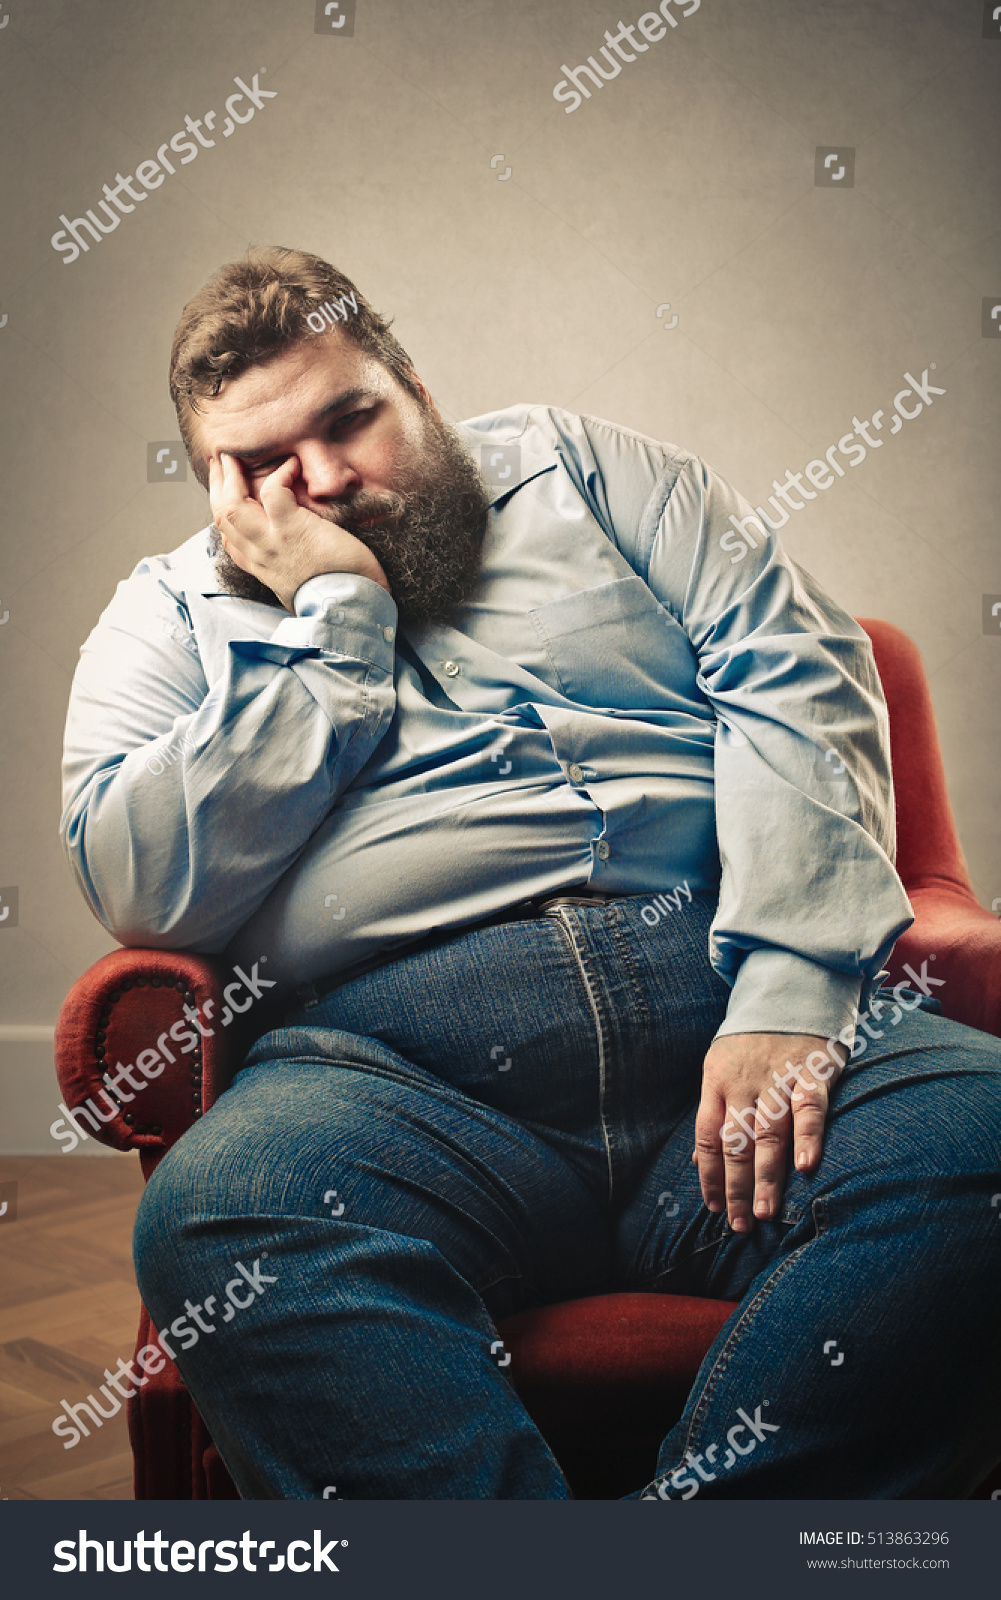 Obese man sitting in a red armchair stock photo 513863296 for Sitting in armchair